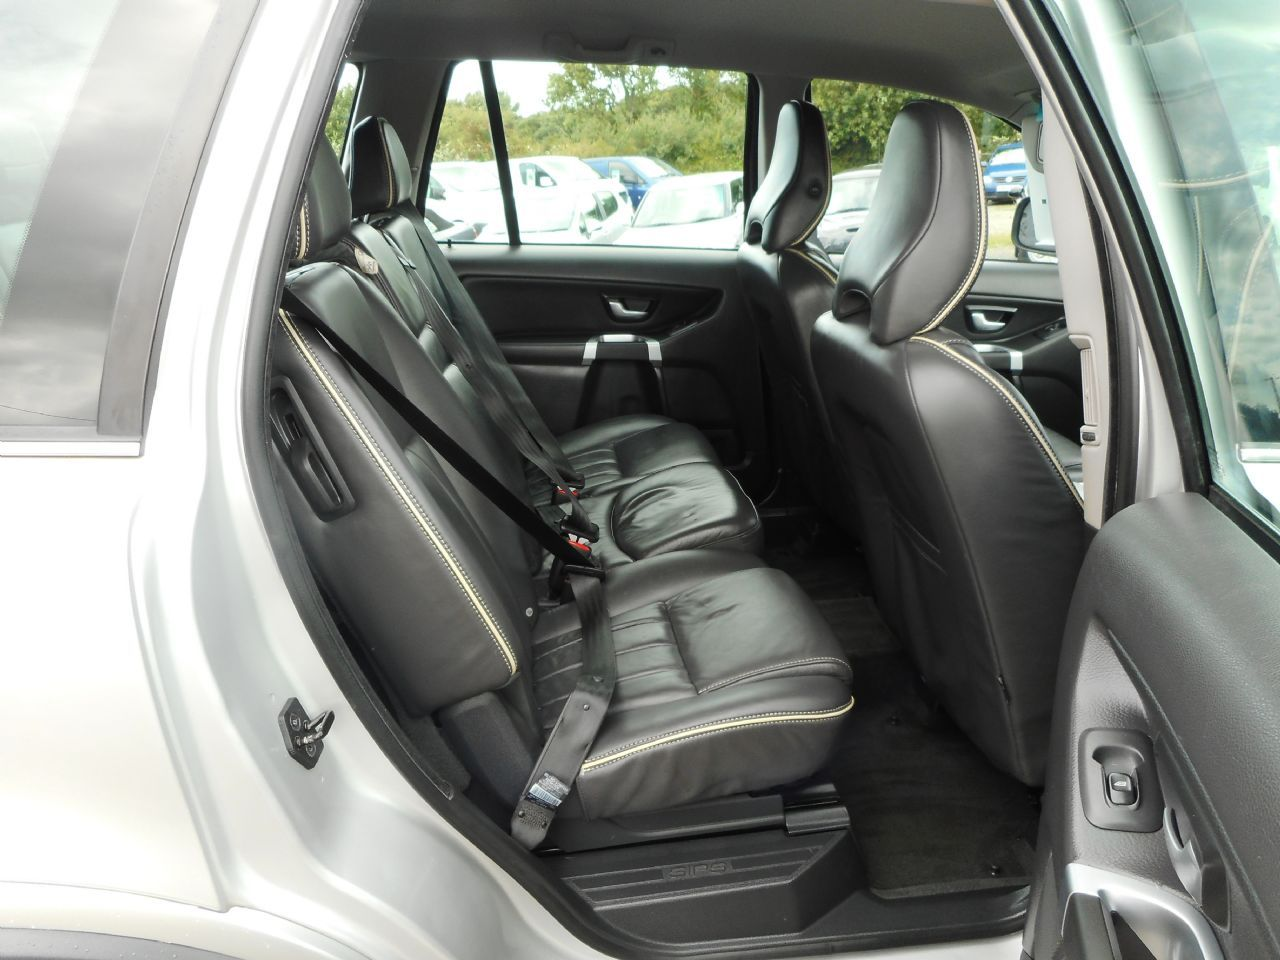 VOLVO XC90 D5 AWD (200 bhp) SE Lux Geartronic (2011) - Picture 8